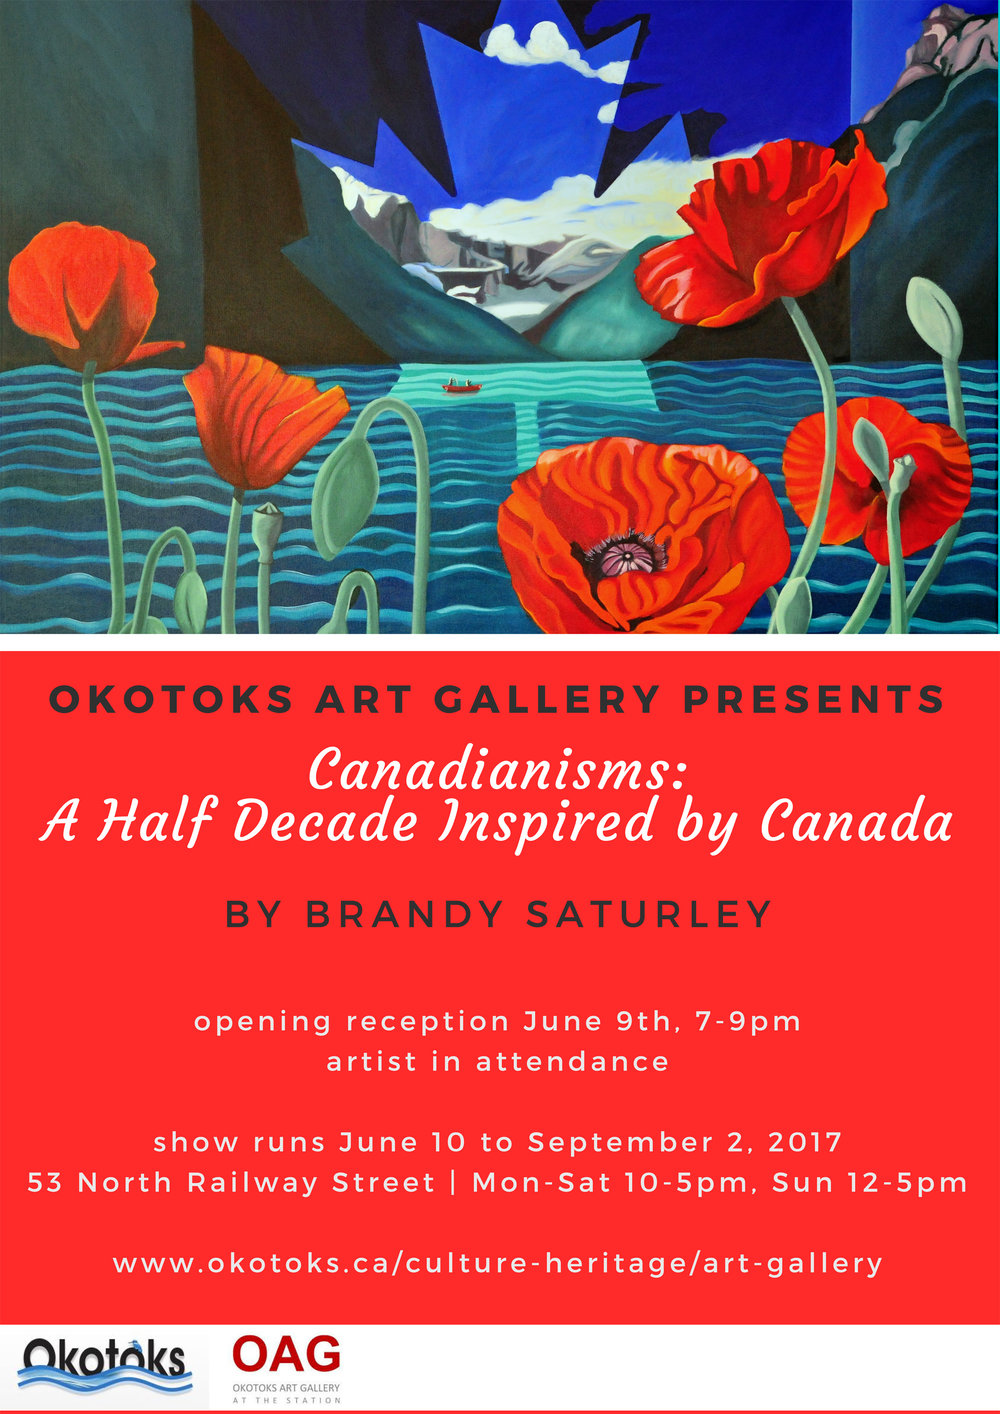 CANADIANISMS: A Half Decade Inspired by Canada, opens June 9th, 2017 and runs until Septemeber 2, 2017